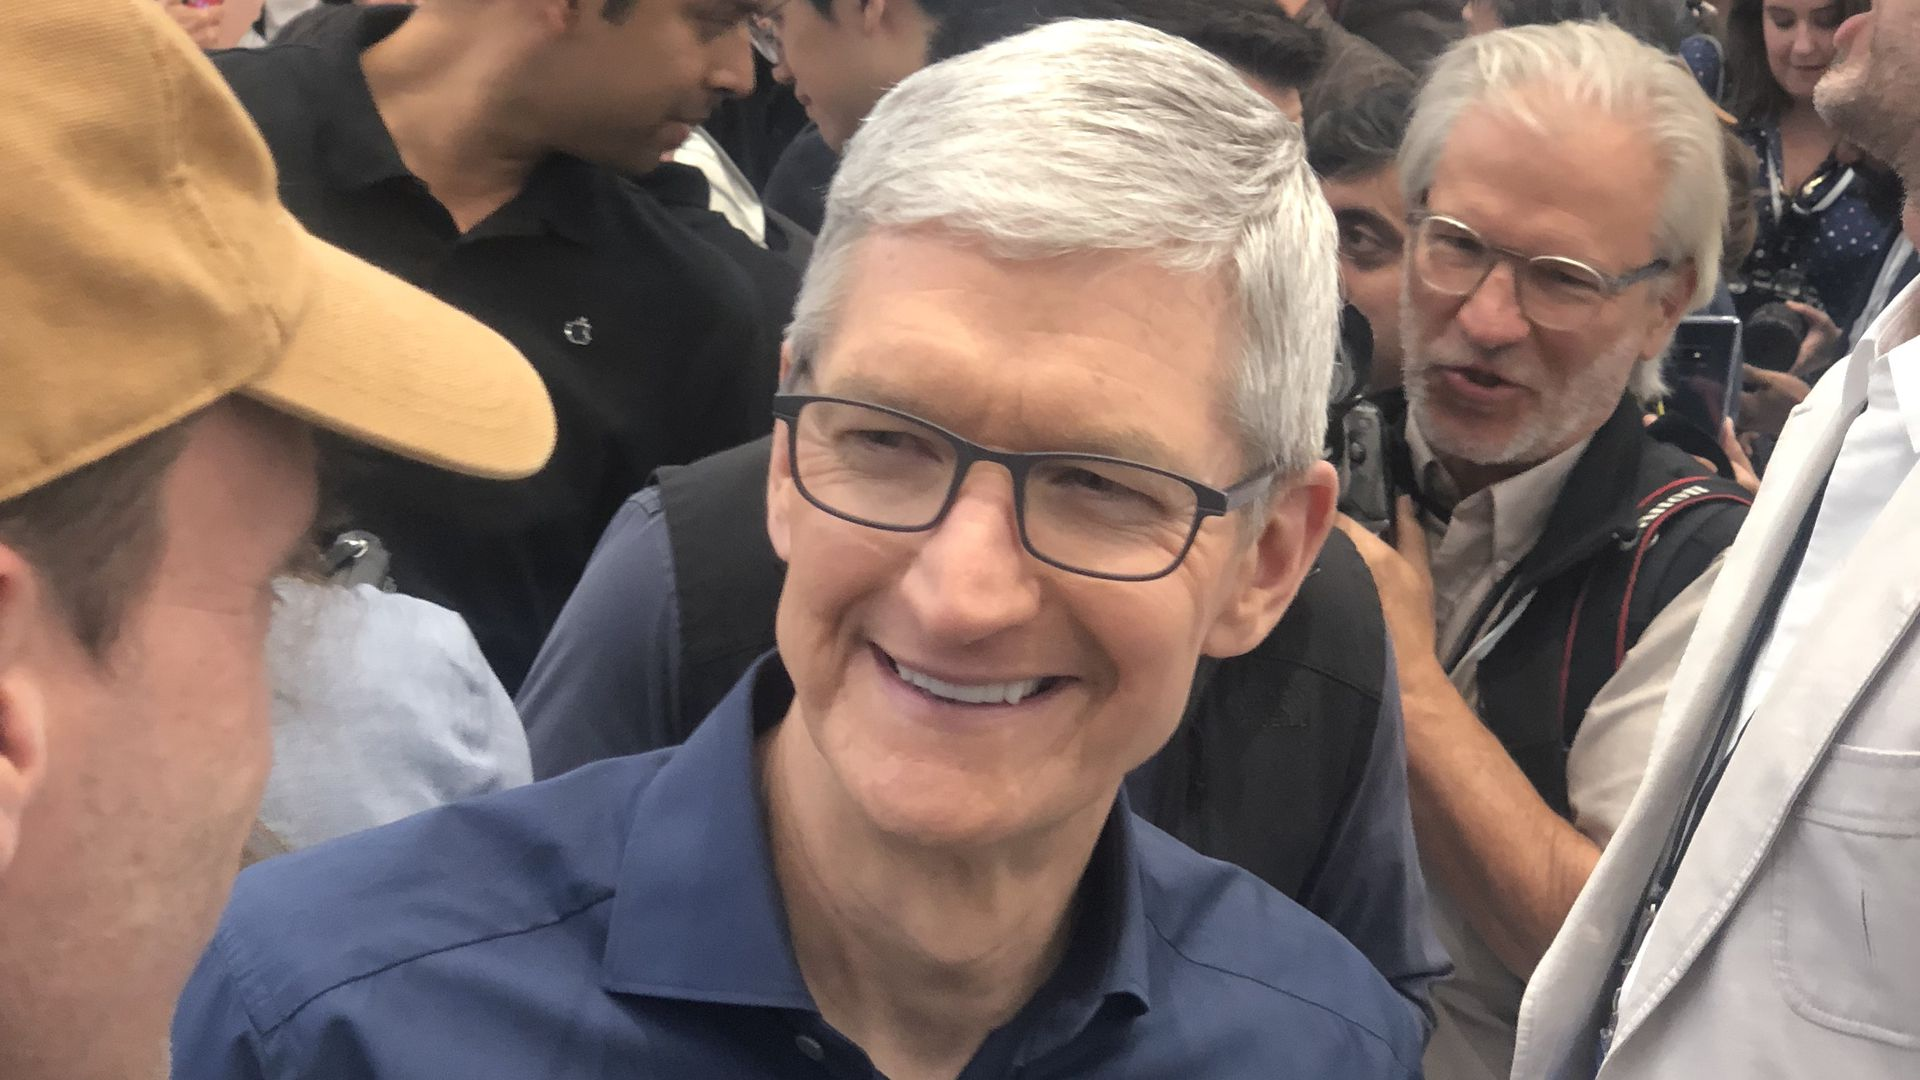 Apple CEO Tim Cook at the iPhone Xs launch event